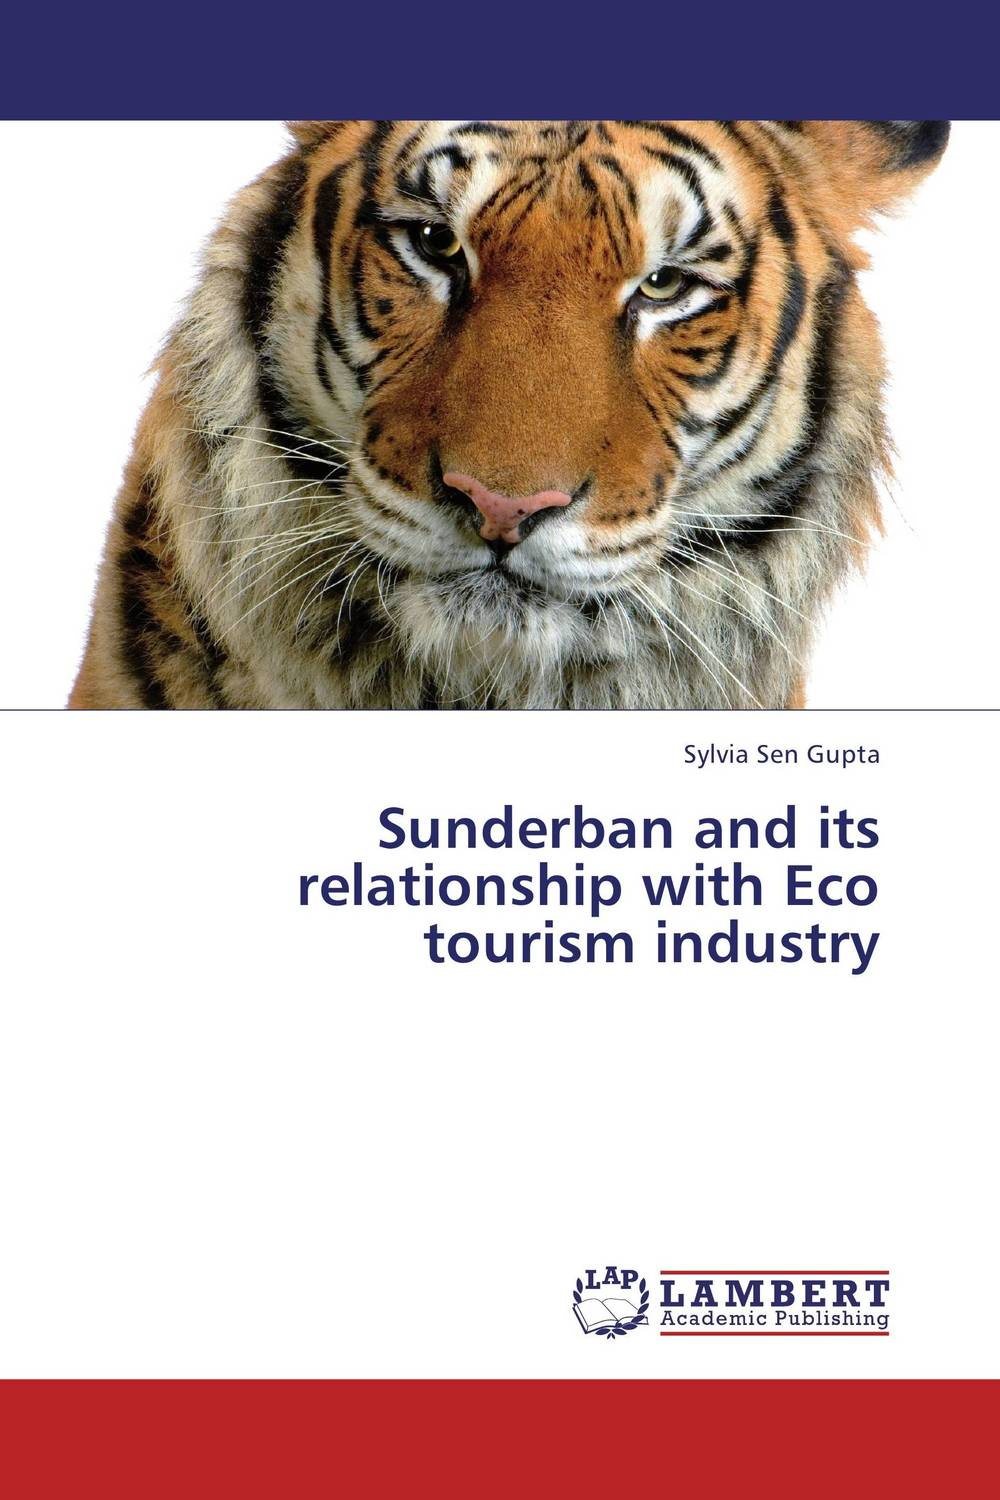 Sunderban and its relationship with Eco tourism industry biodiversity of chapredi reserve forest